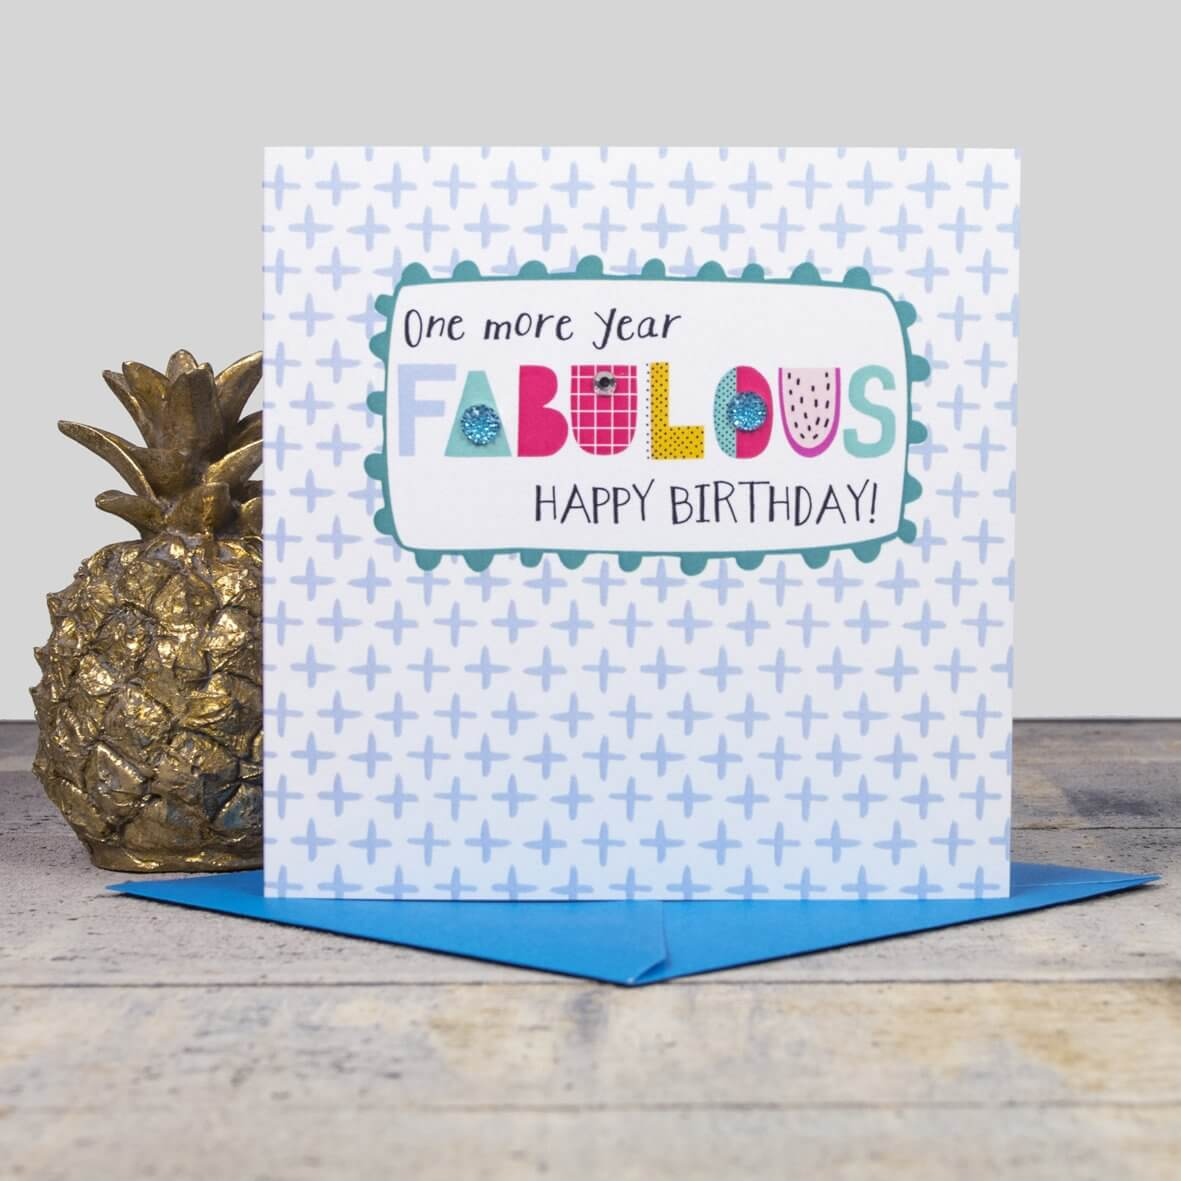 One More Year Fabulous - Happy Birthday Card